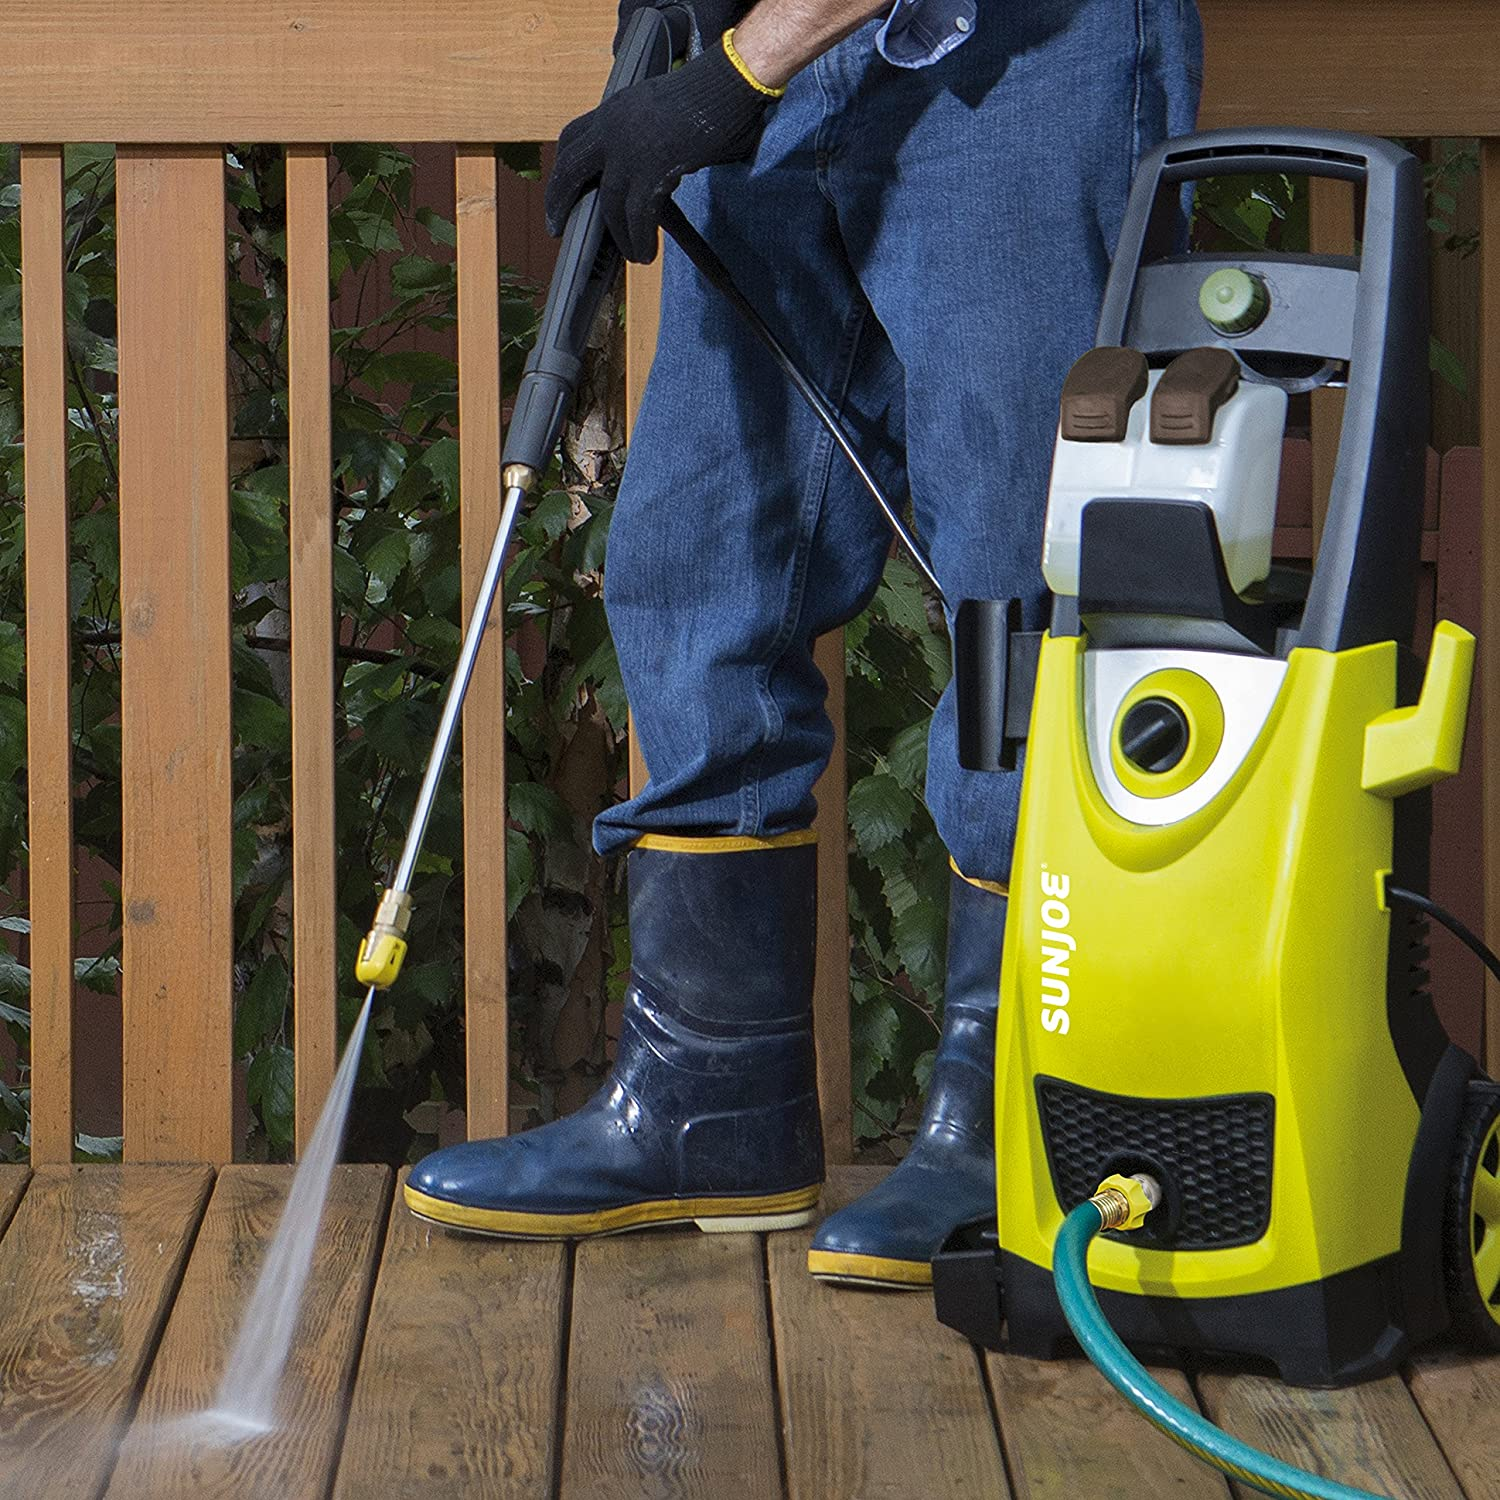 The Best Electric Pressure Washers For Your Garden: Reviews & Buying Guide 4